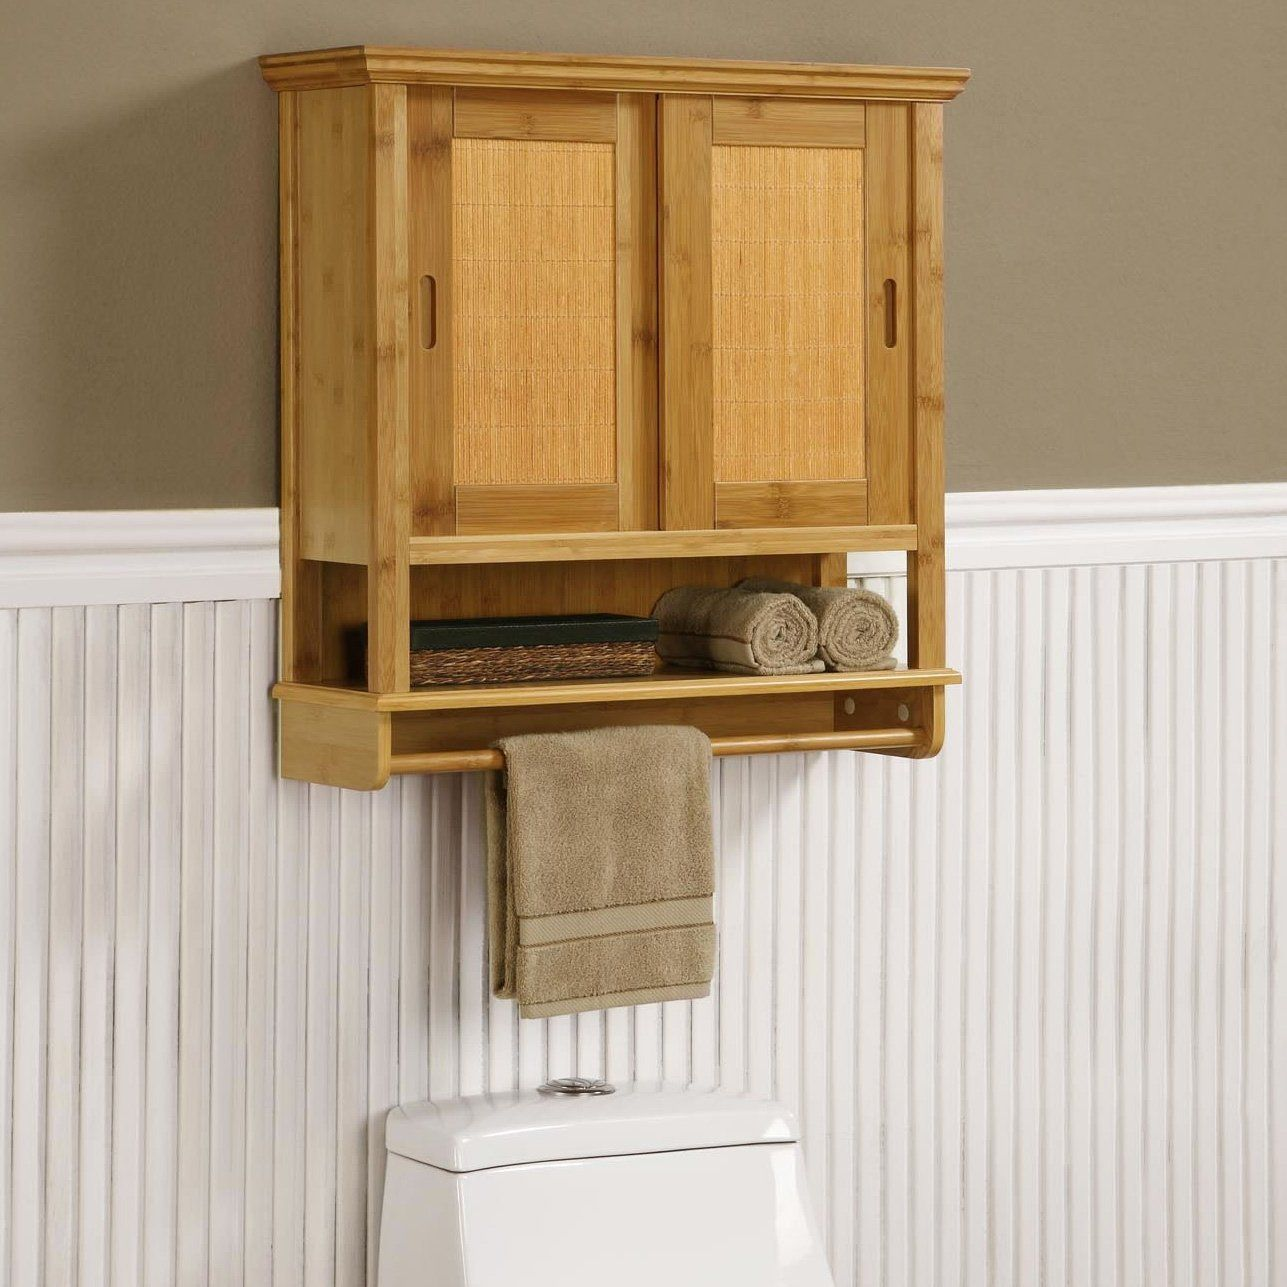 White Wooden Bathroom Furniture Double Rustic Bathroom Wall Cabinets Ideas The Salty Bathroom Wall Storage Bathroom Wall Storage Cabinets Wall Storage Cabinets